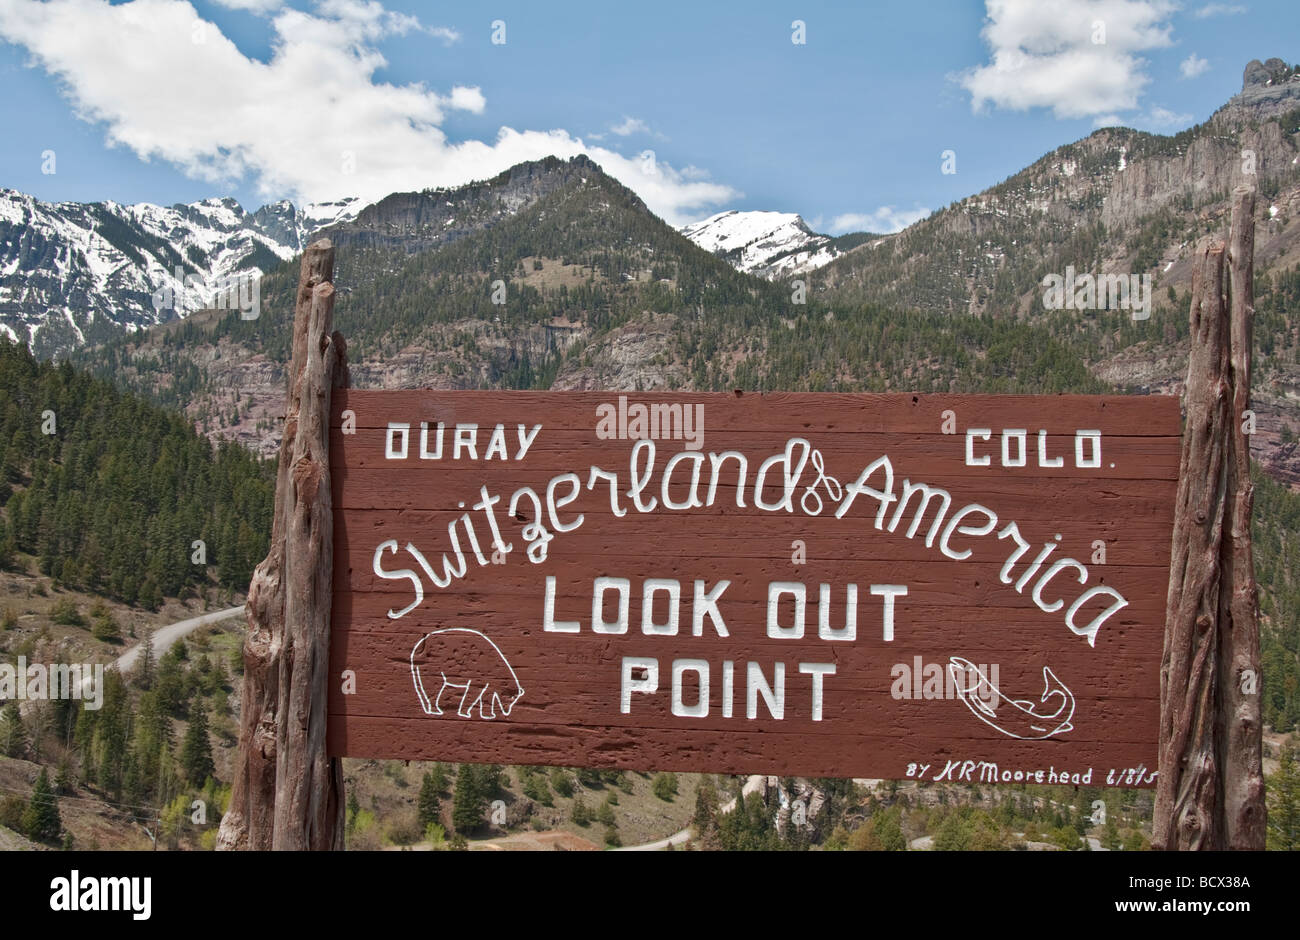 Colorado Ouray at northern end of the Million Dollar Highway Switzerland of America Look Out Point - Stock Image